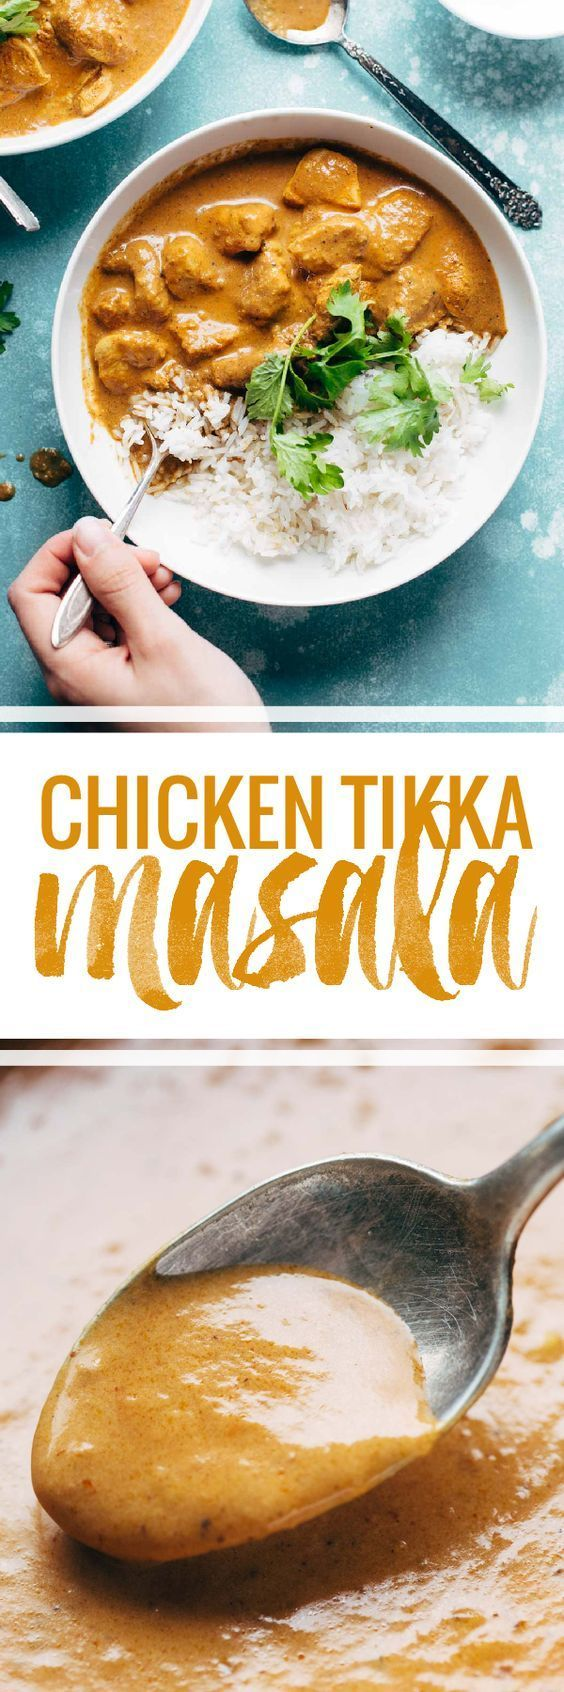 Chicken Tikka Masala - creamy, perfectly spicy, and ready in 30 minutes! you won't believe how easy it is to make this at home!   pinchofyum.com